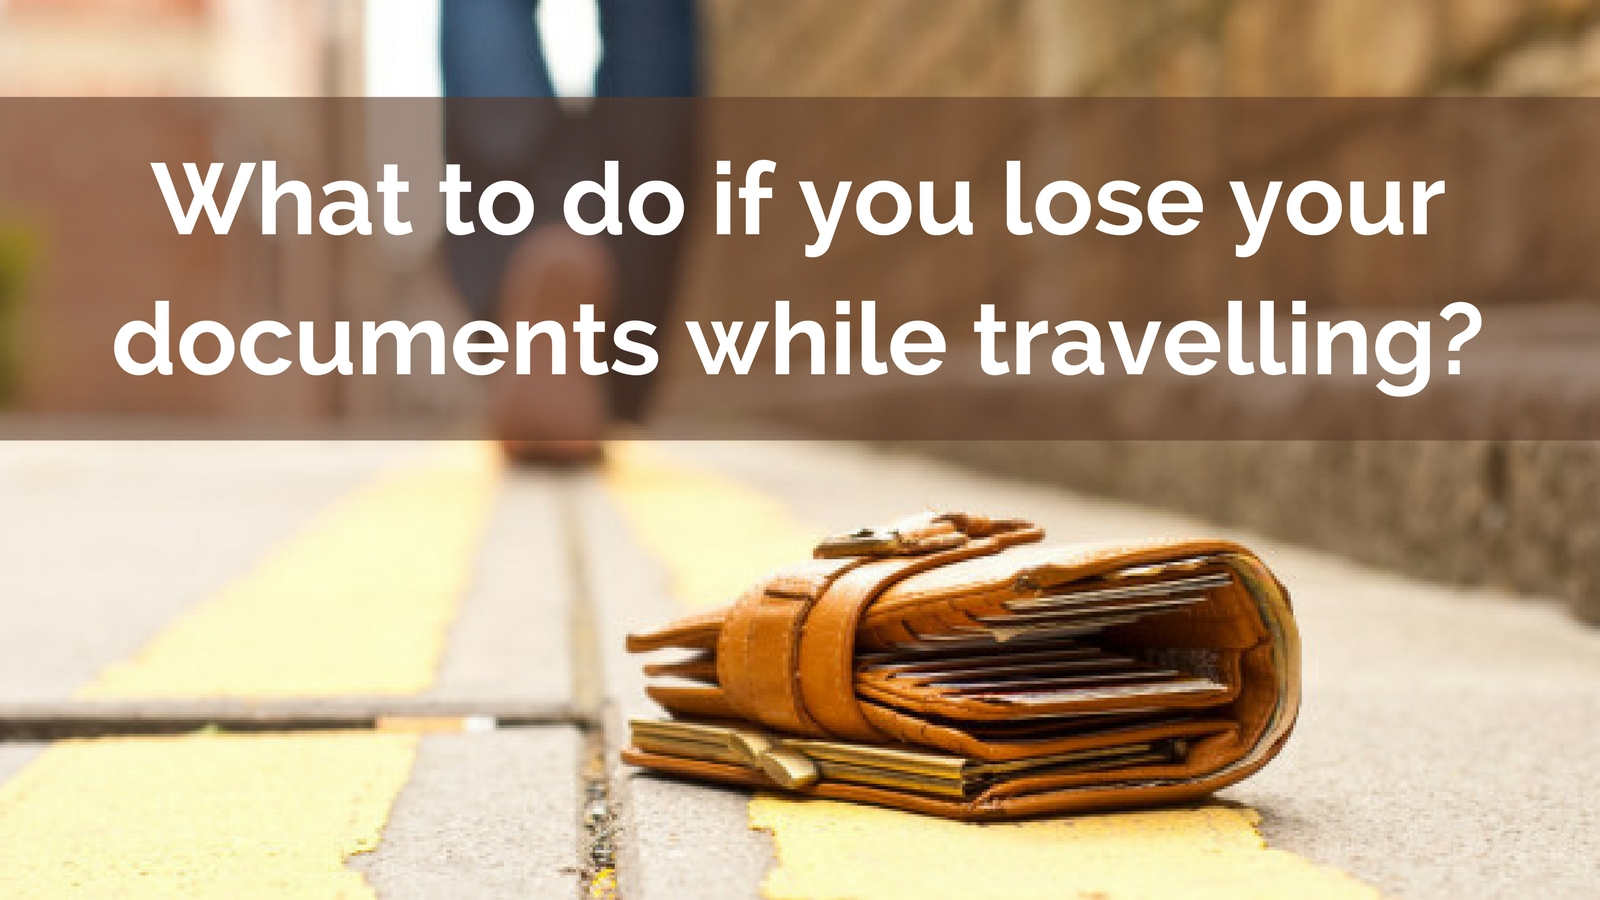 What to do if you lose your documents while travelling?